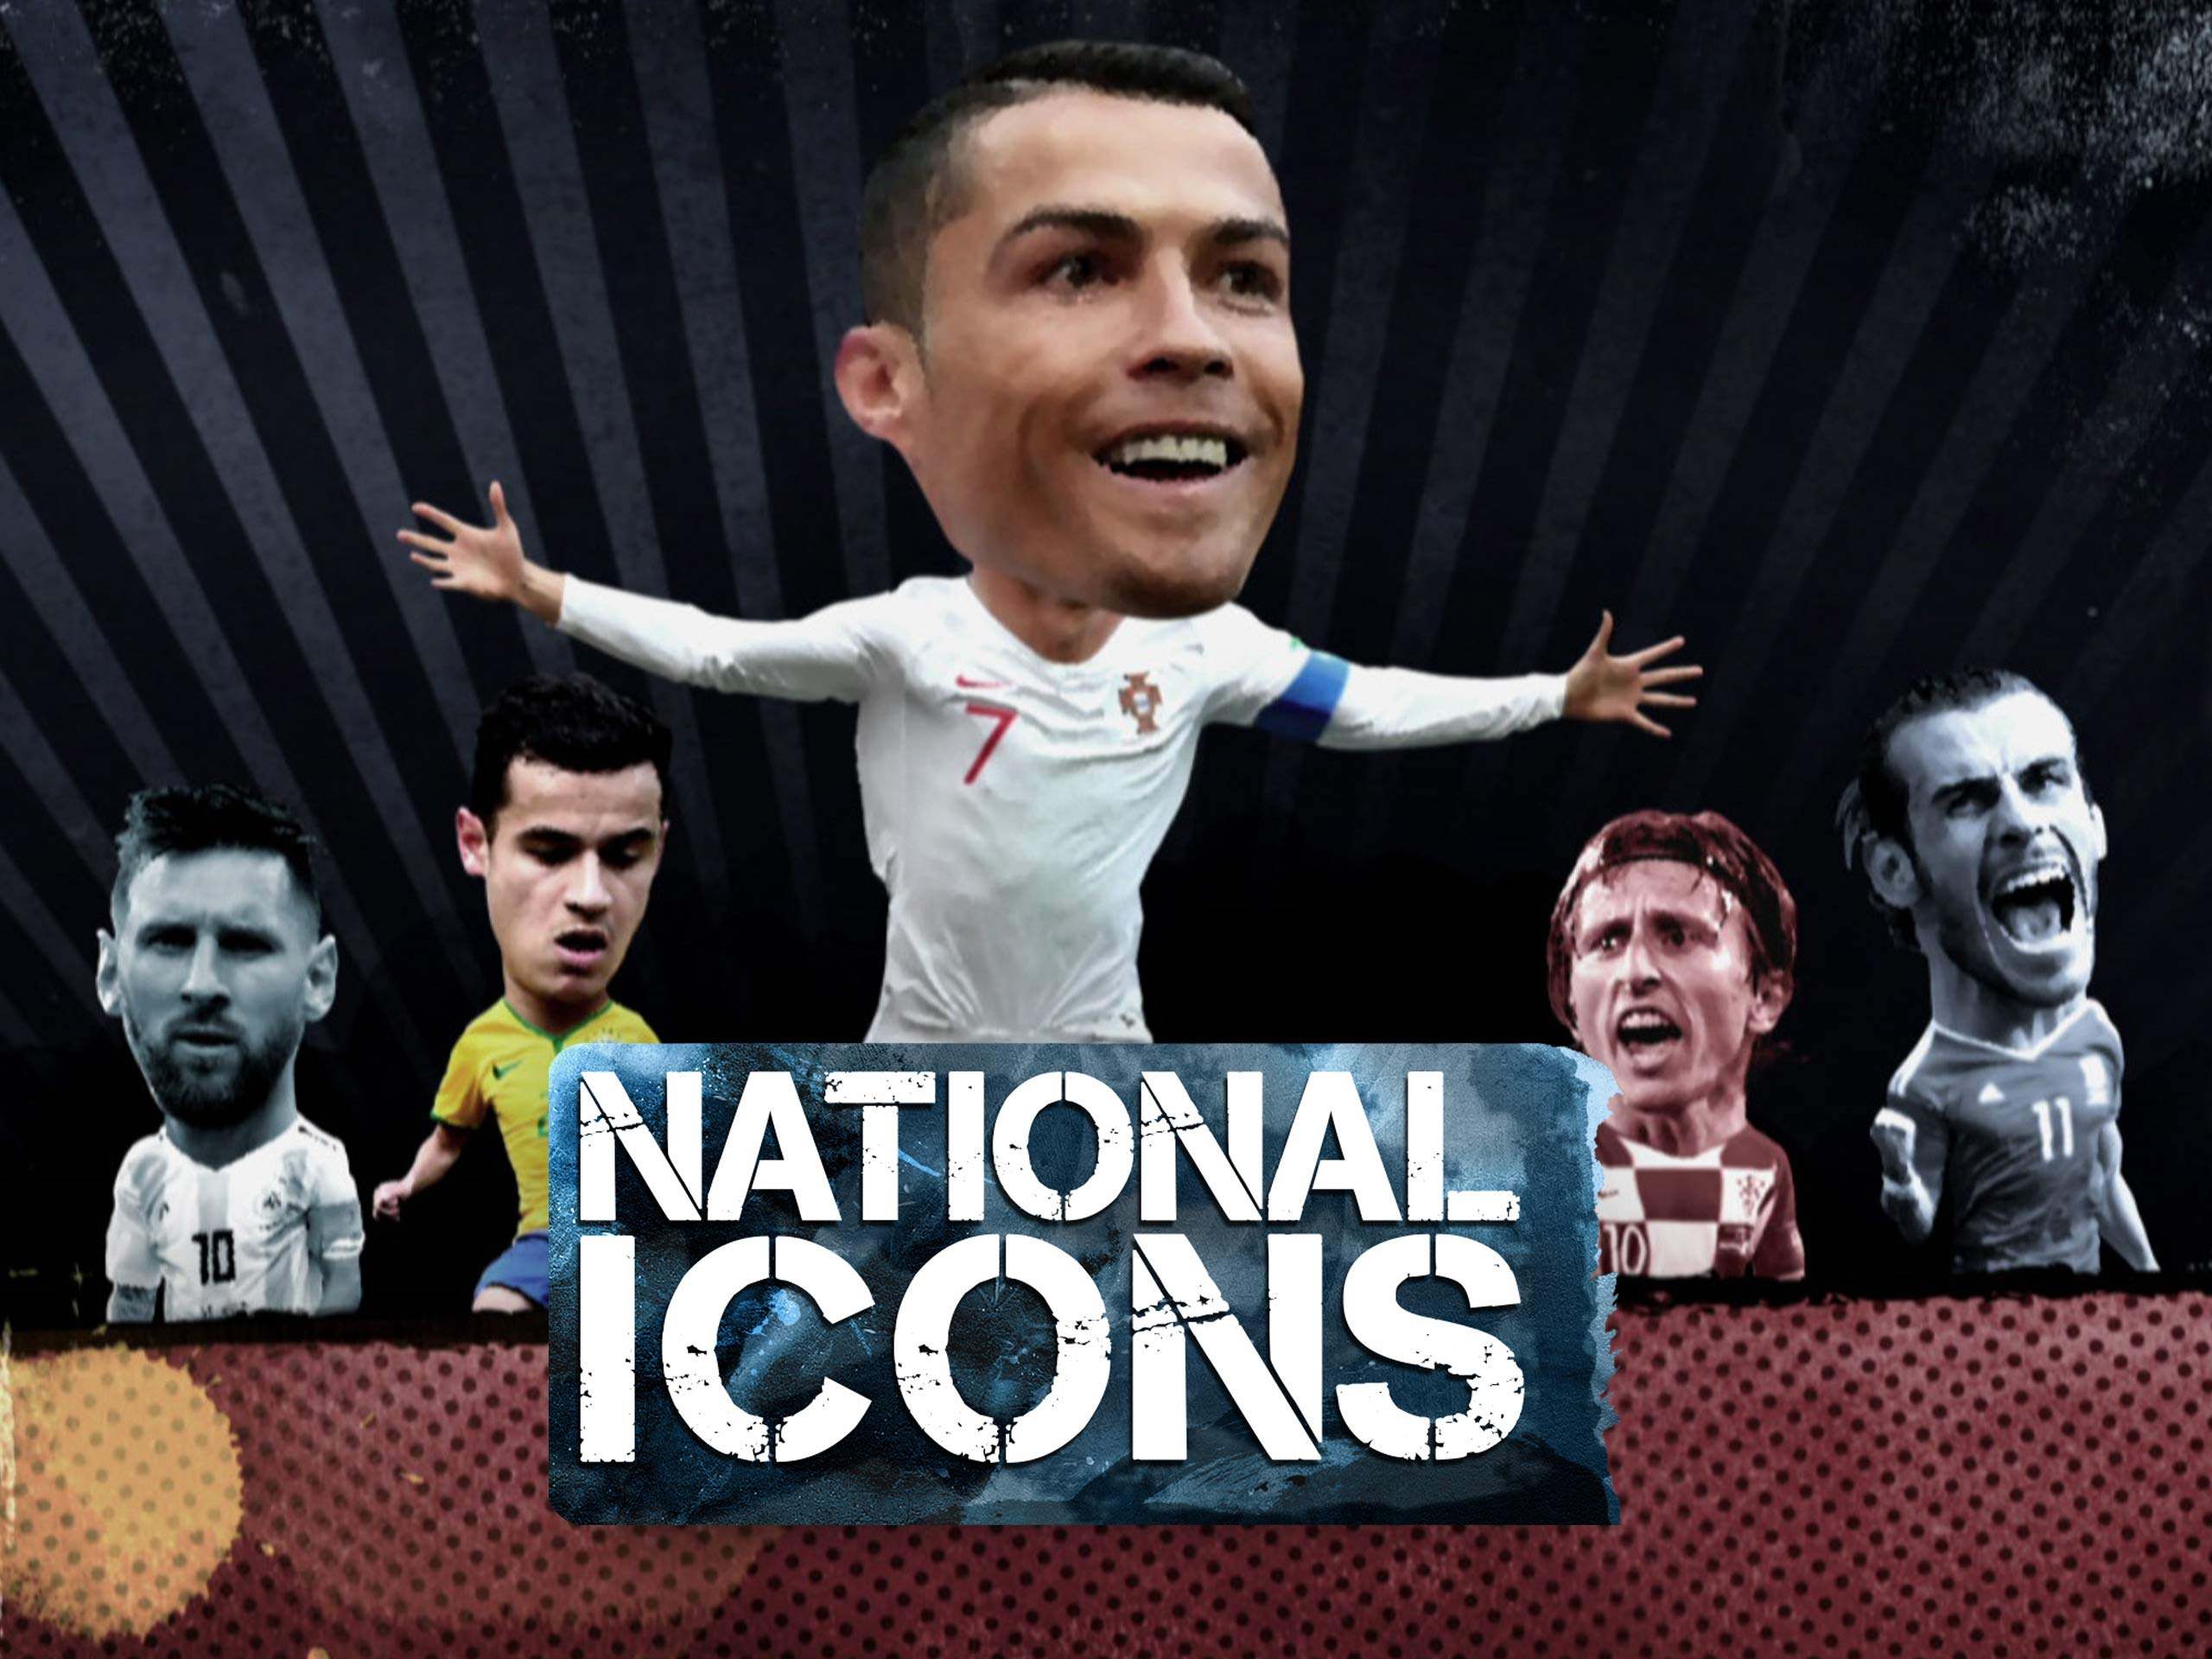 National Icons - Season 1